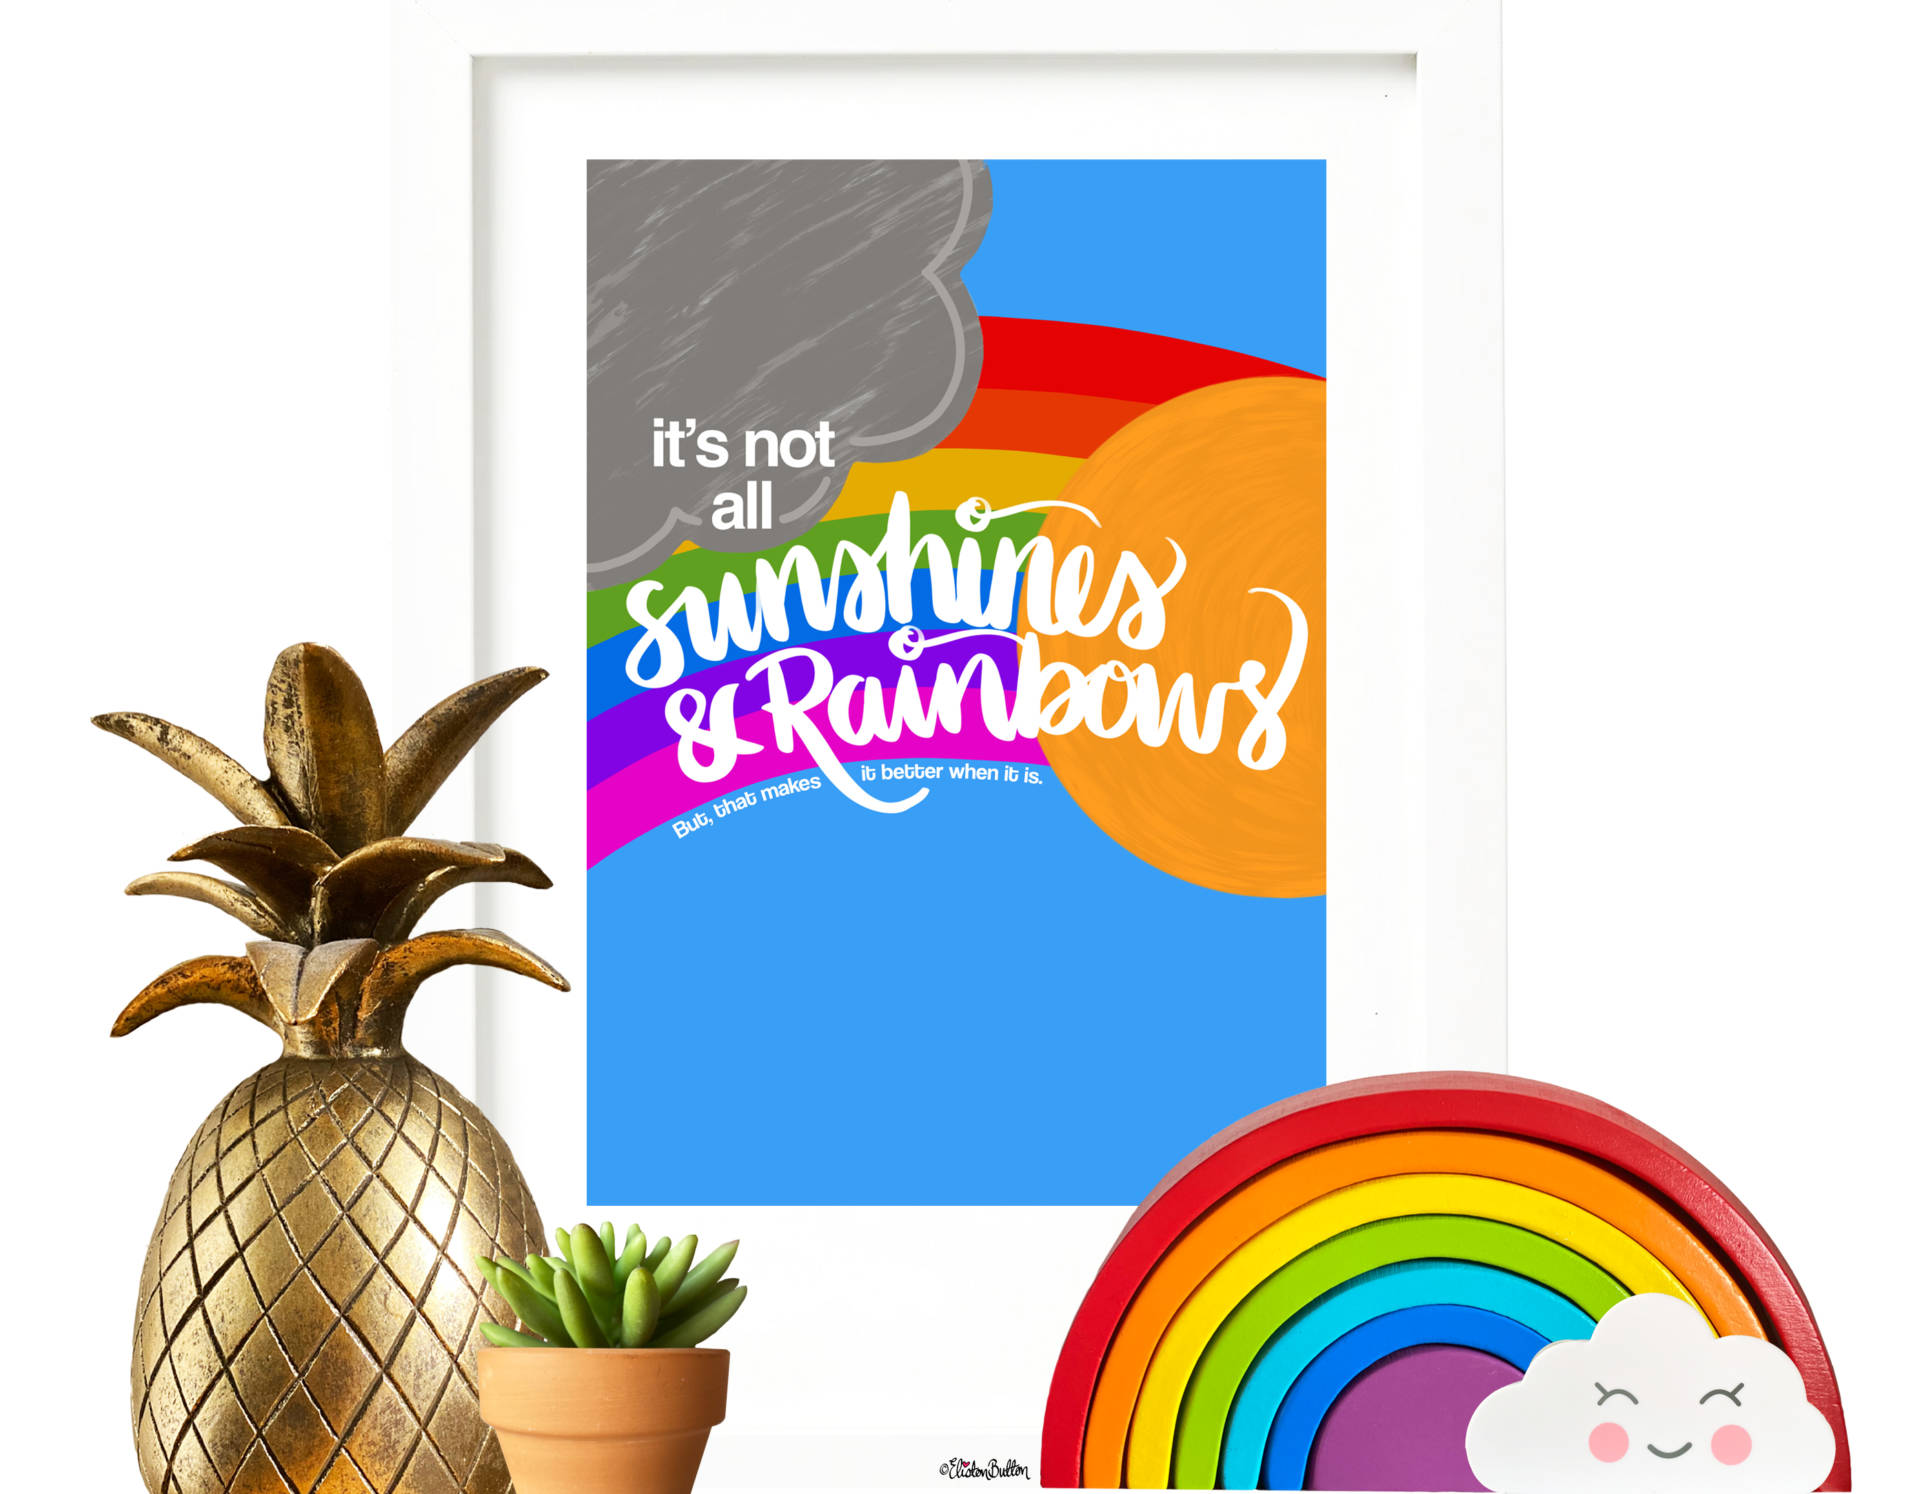 New Colourful & Fun Illustrated Quote Prints! at www.elistonbutton.com - Eliston Button - A Treasure Trove of Creativity, Colour and Adventure.